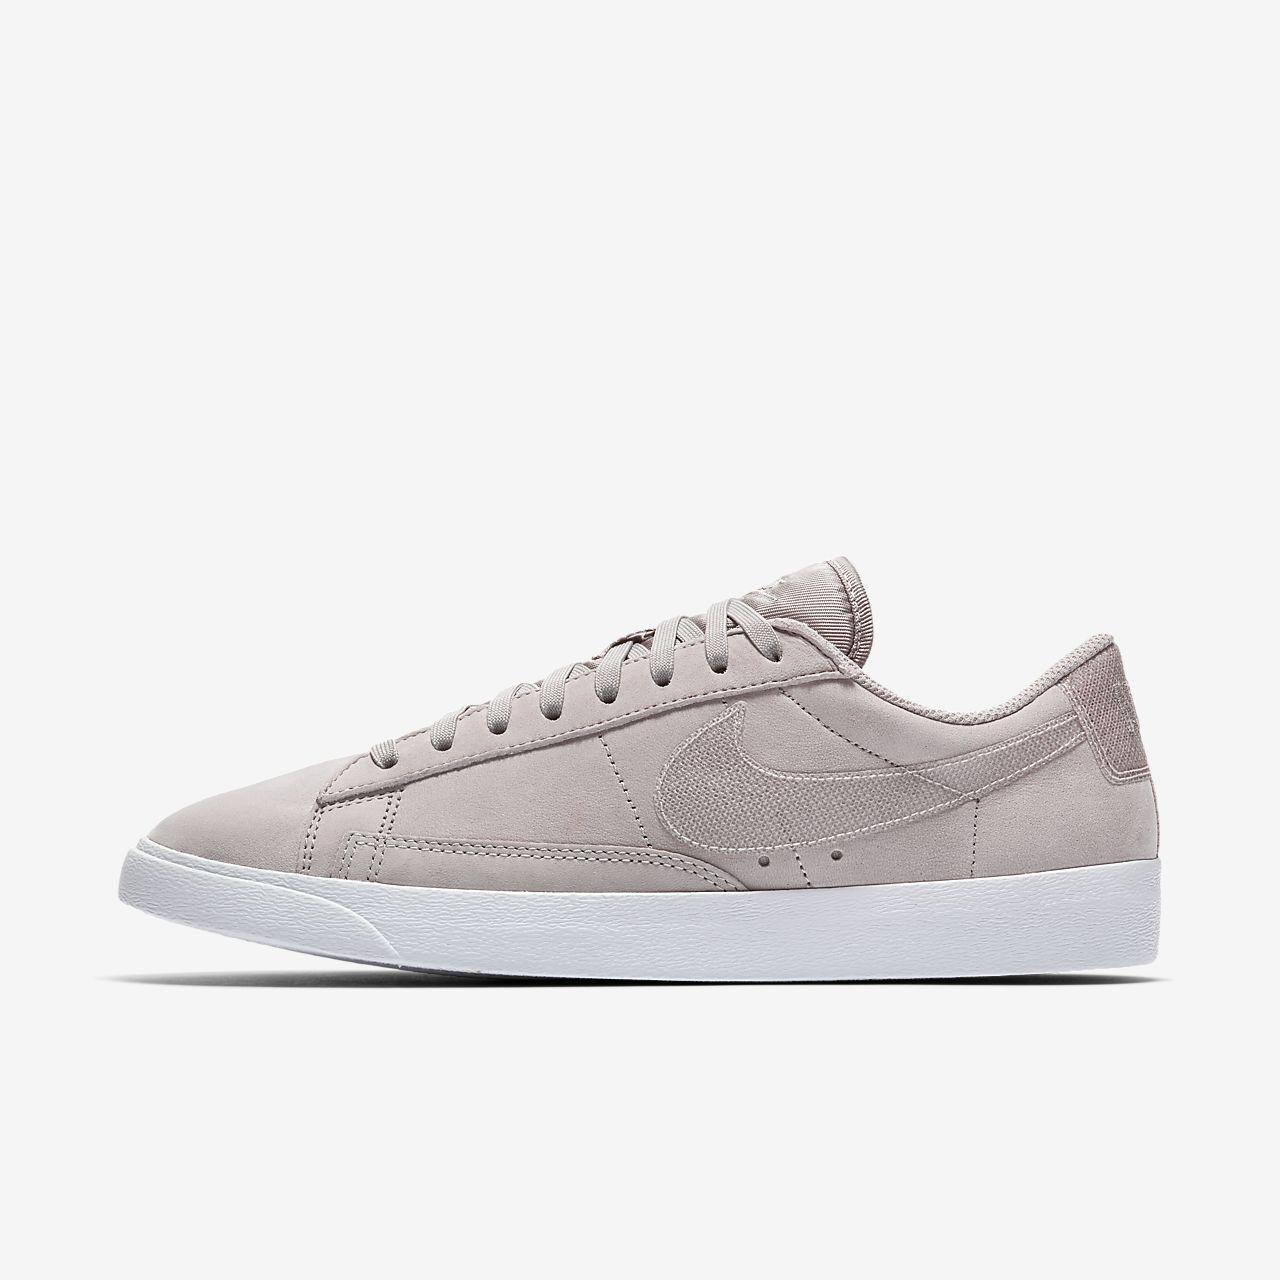 Nike Blazer Low LX Womens Shoe